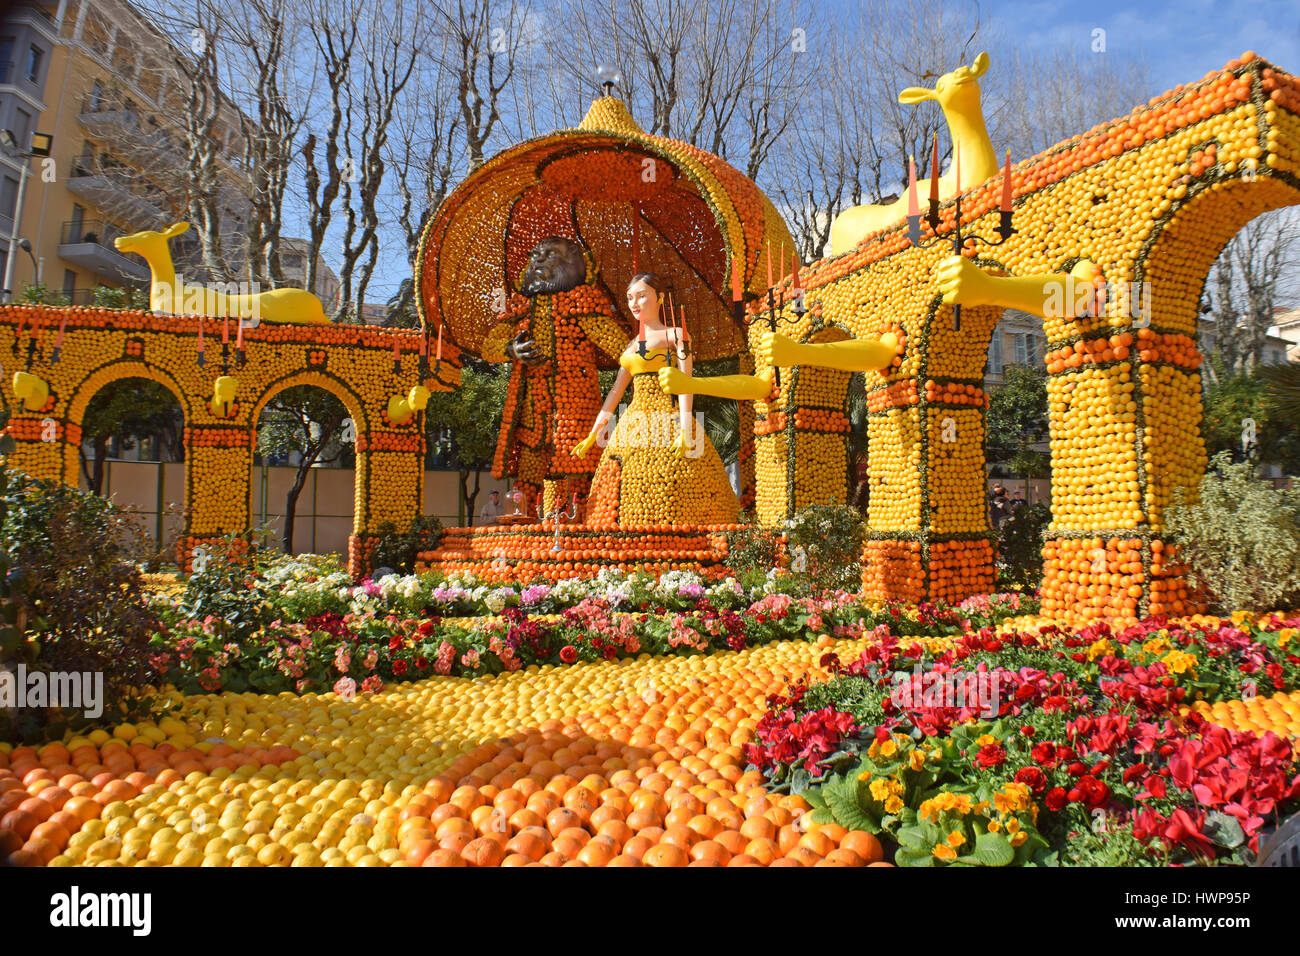 Lemon Festival or Fete du Citron Menton France displays in the ...